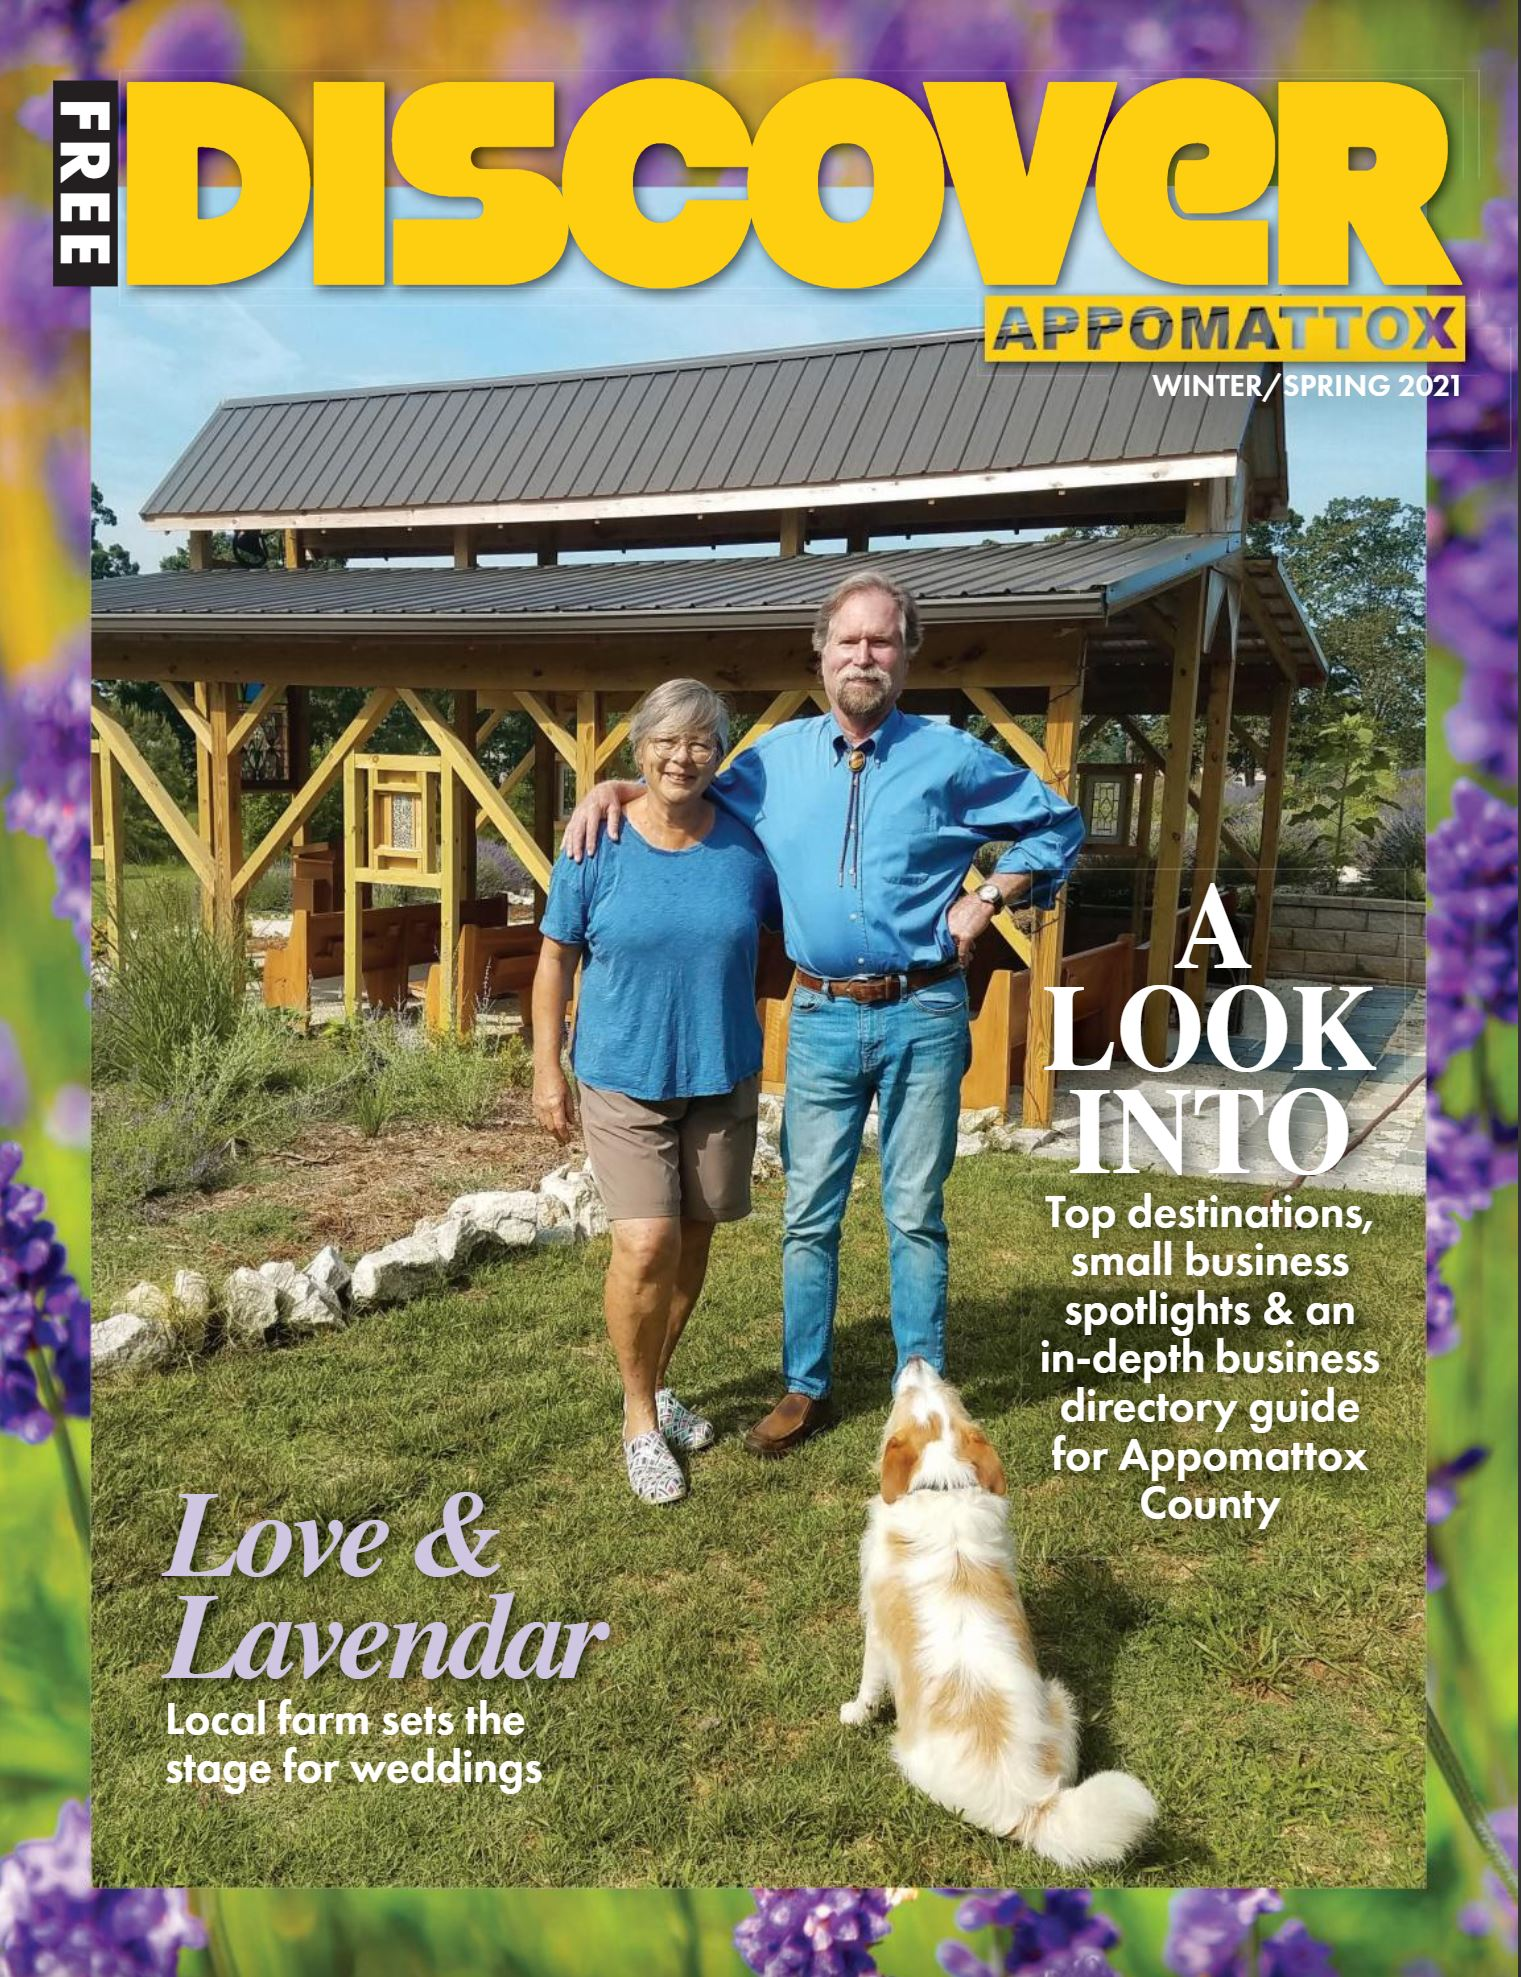 Discover Appomattox Magazine features Evergreen Lavender on the Cover of Winter/Spring 2021 Issue